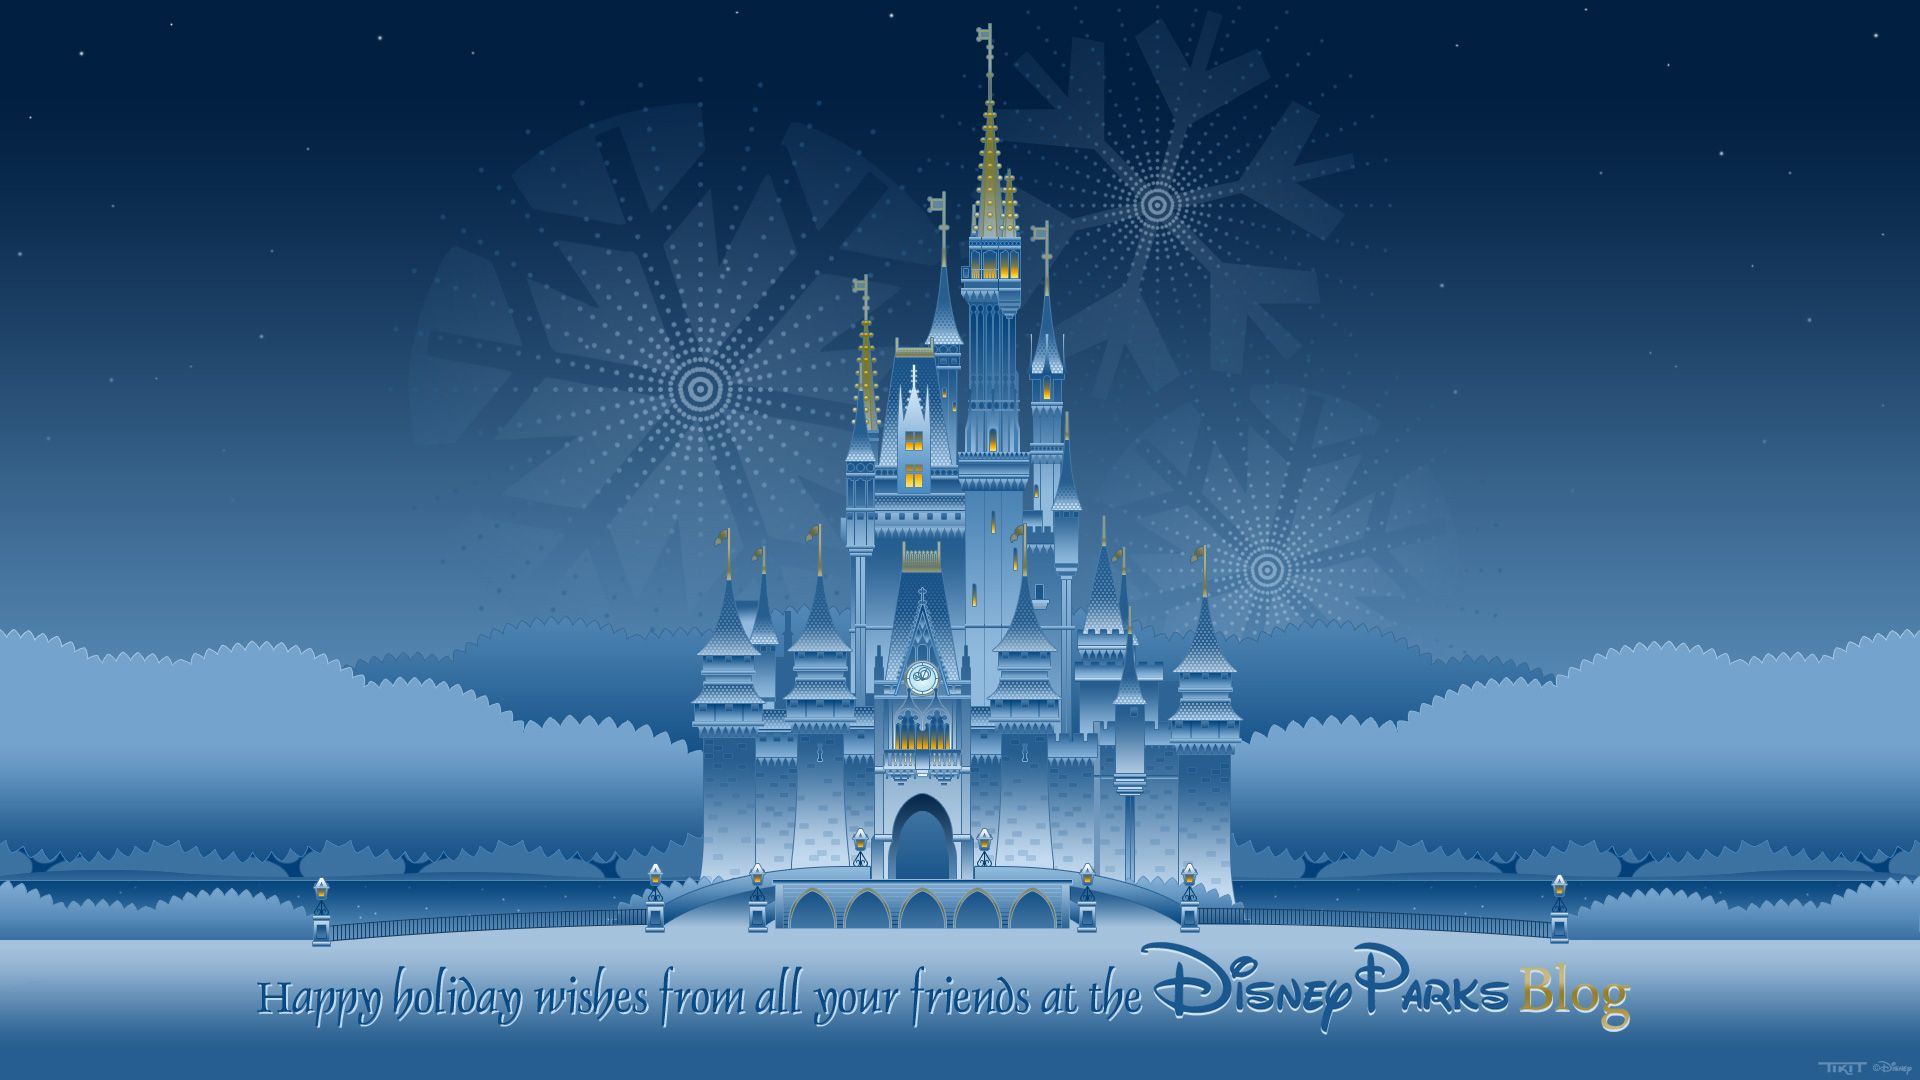 Top 11 Disney Parks Blog Holiday Wallpapers Disney Desktop Wallpaper Wallpaper Iphone Disney Disney Parks Blog